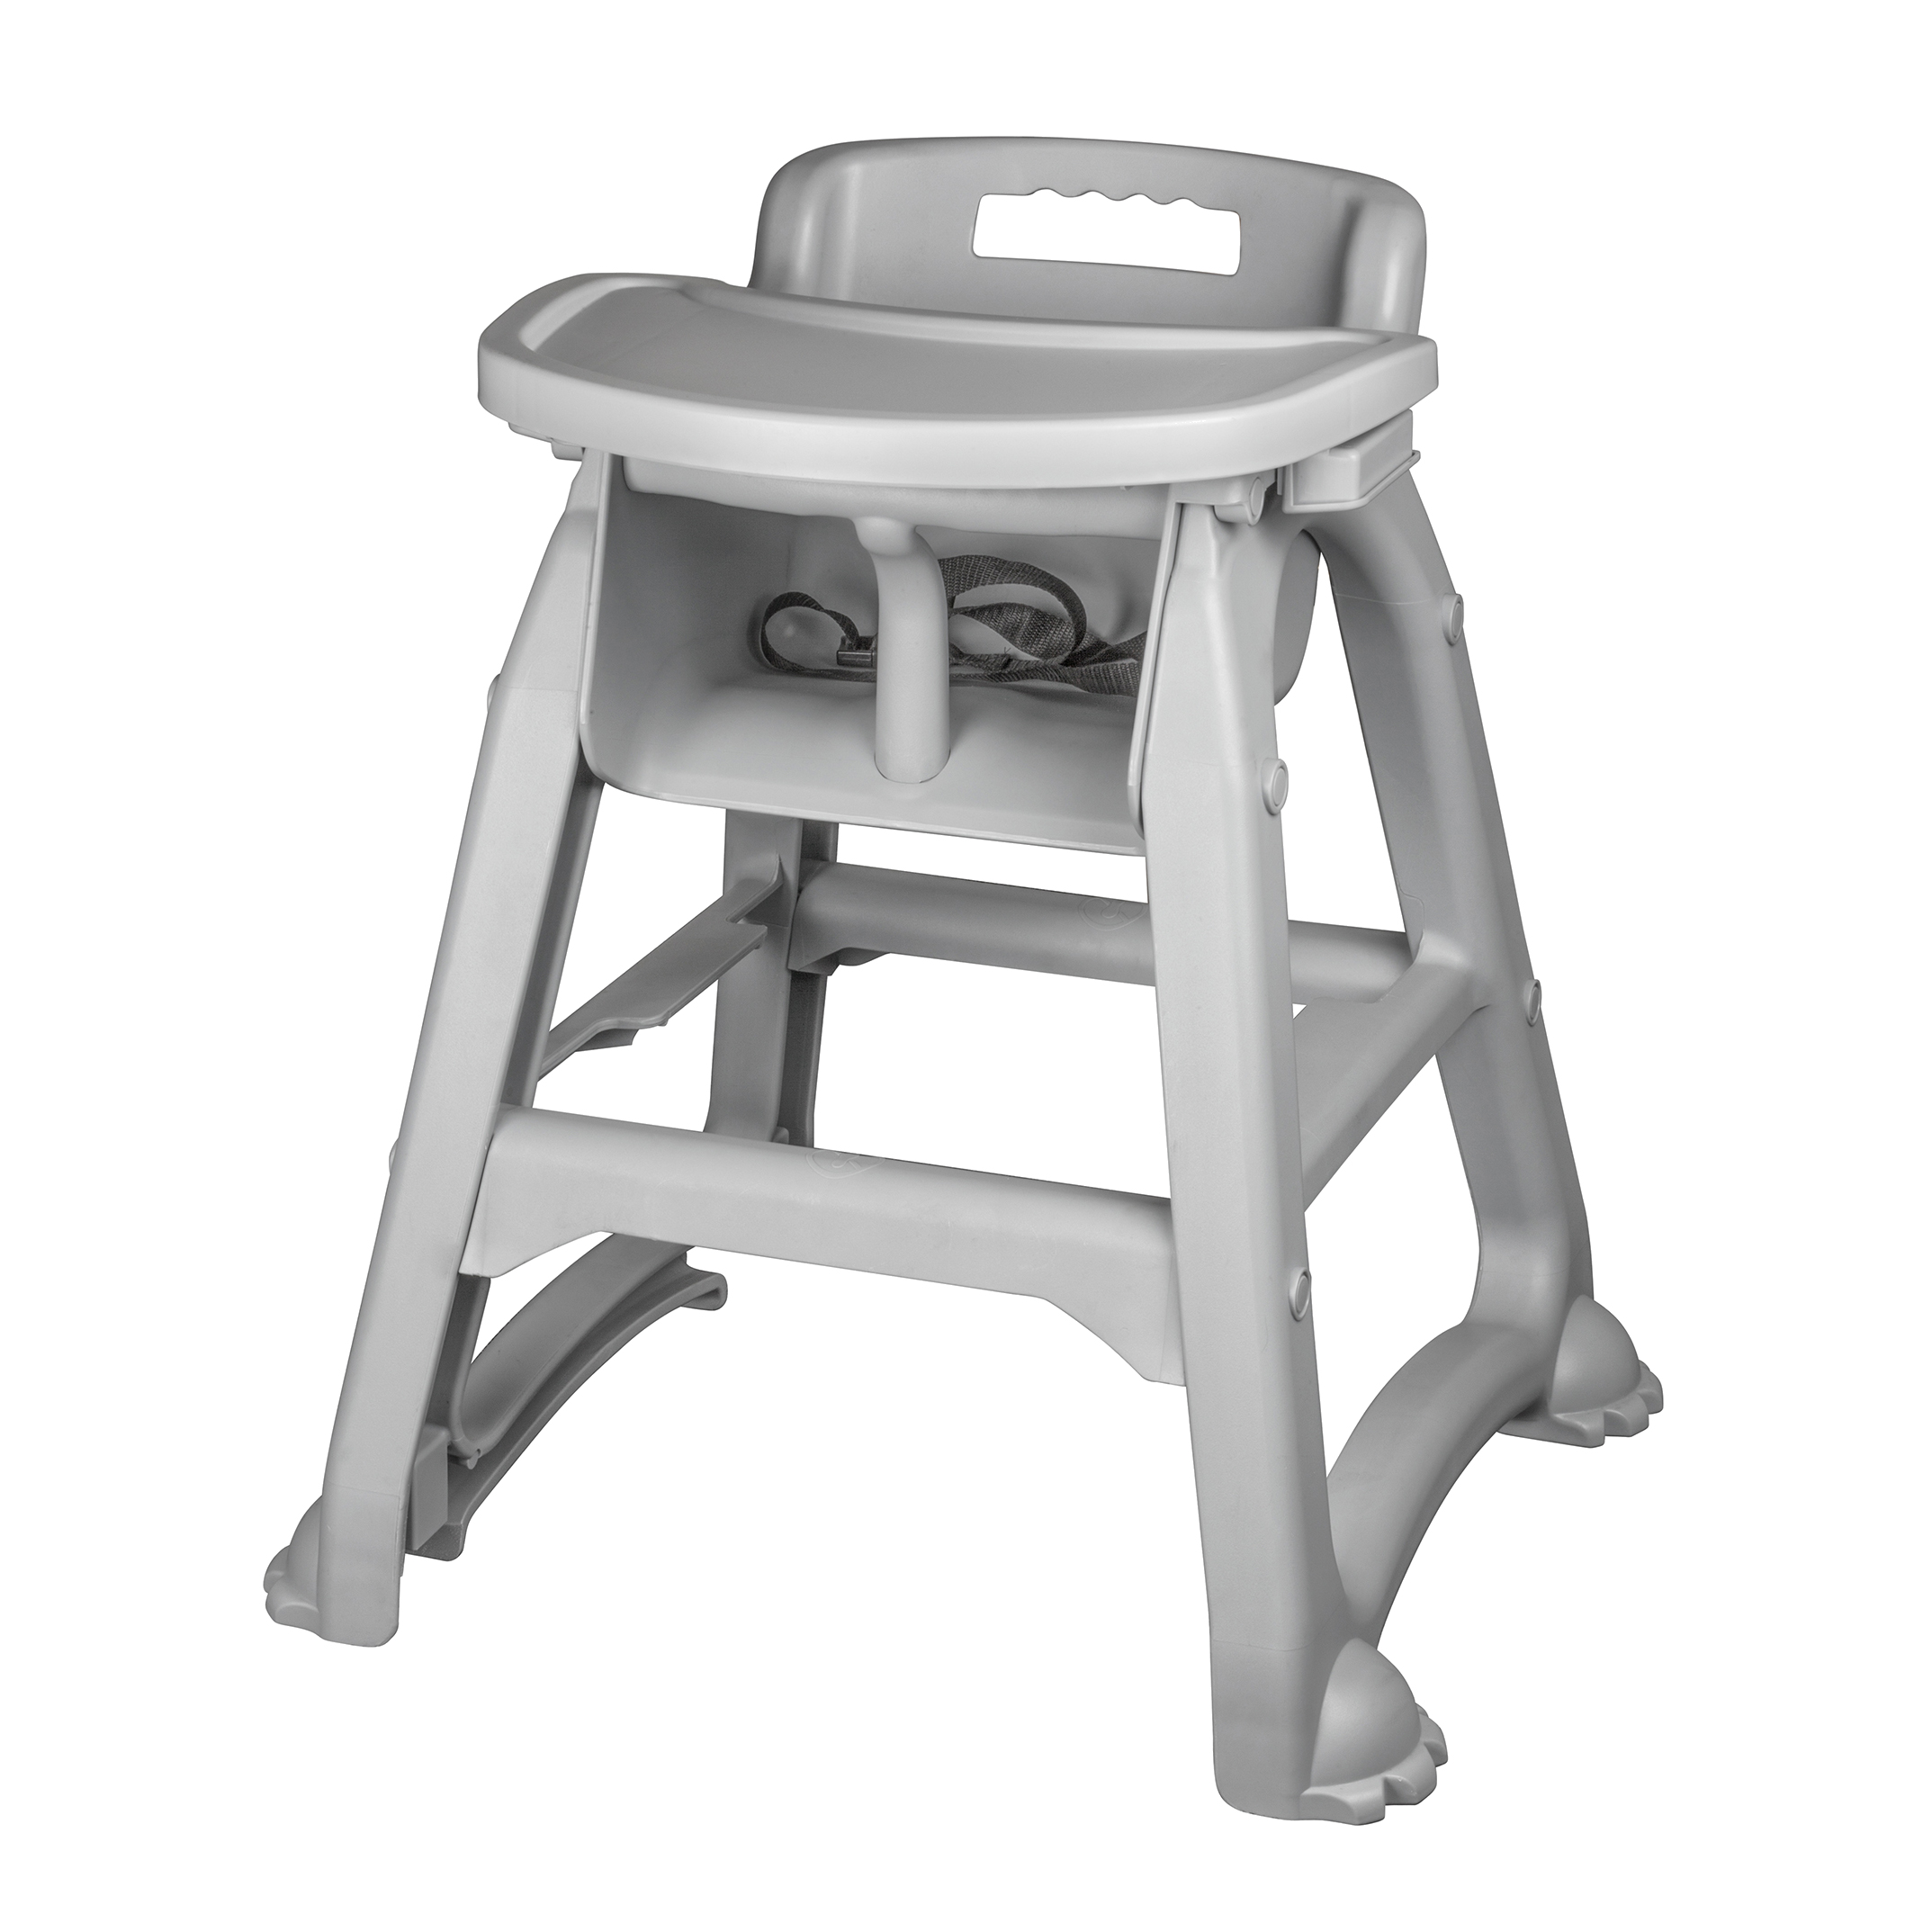 Winco CHH-25 high chair, plastic